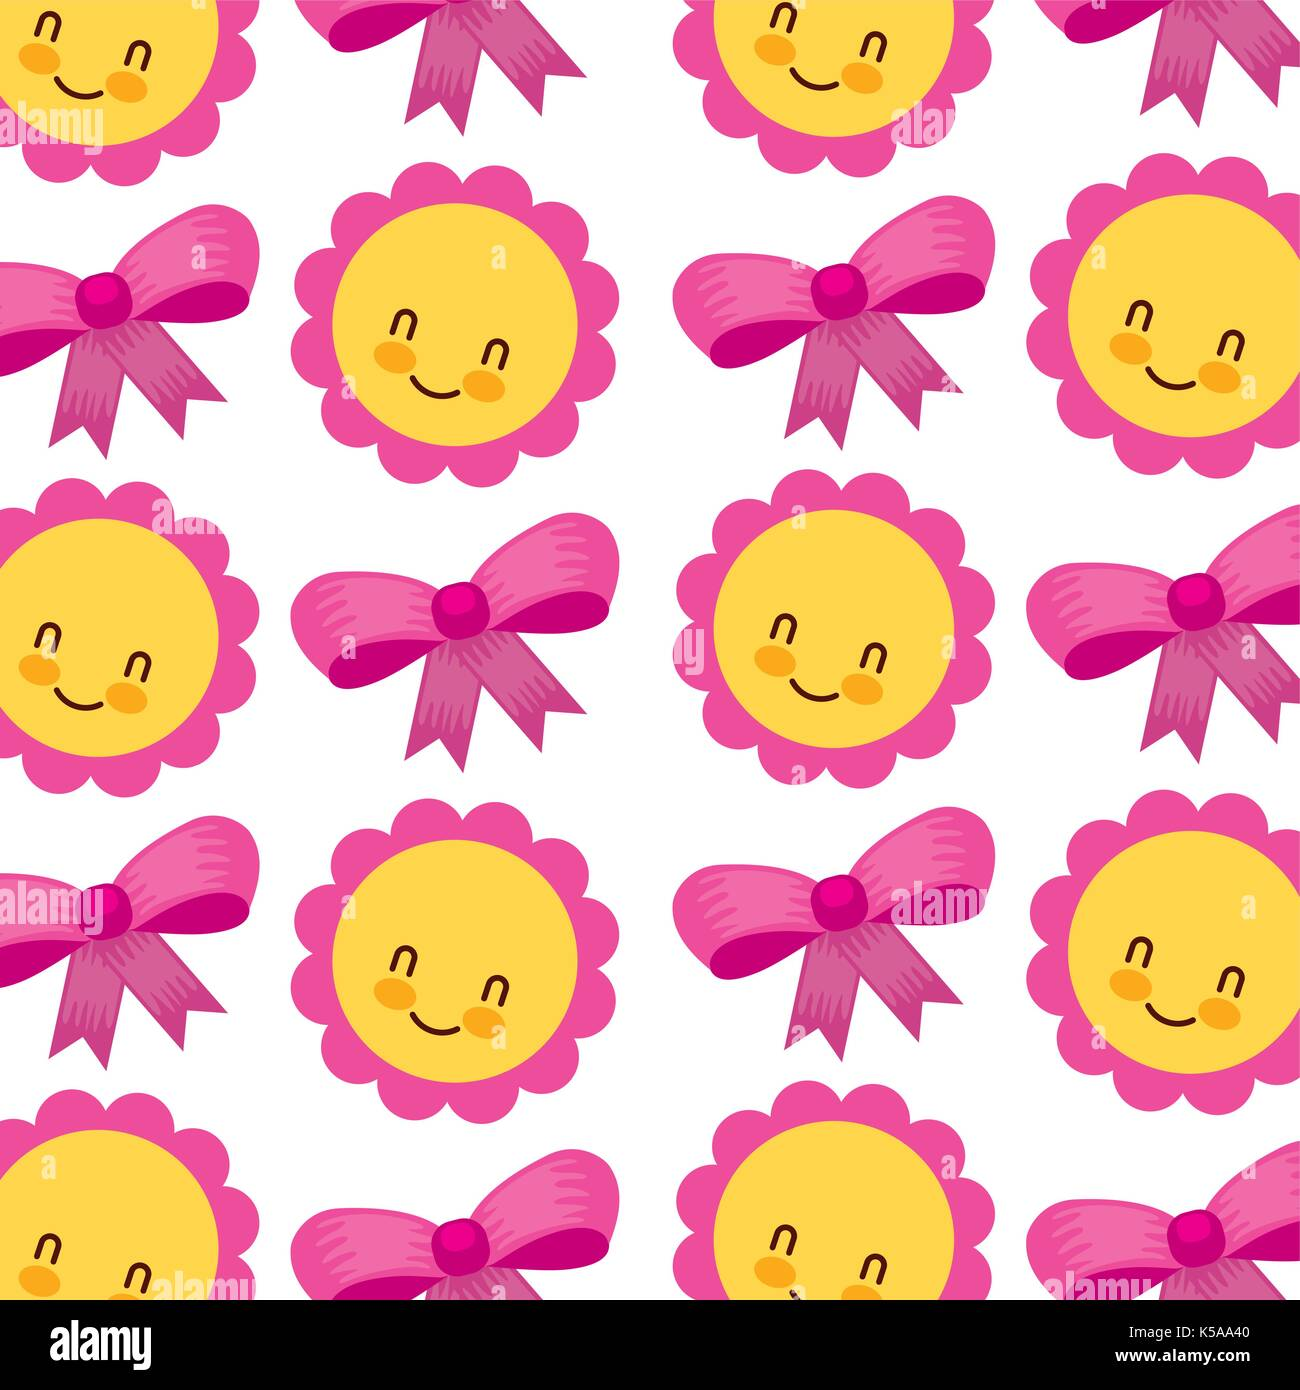 baby pink flower wallpaper stock photos & baby pink flower wallpaper